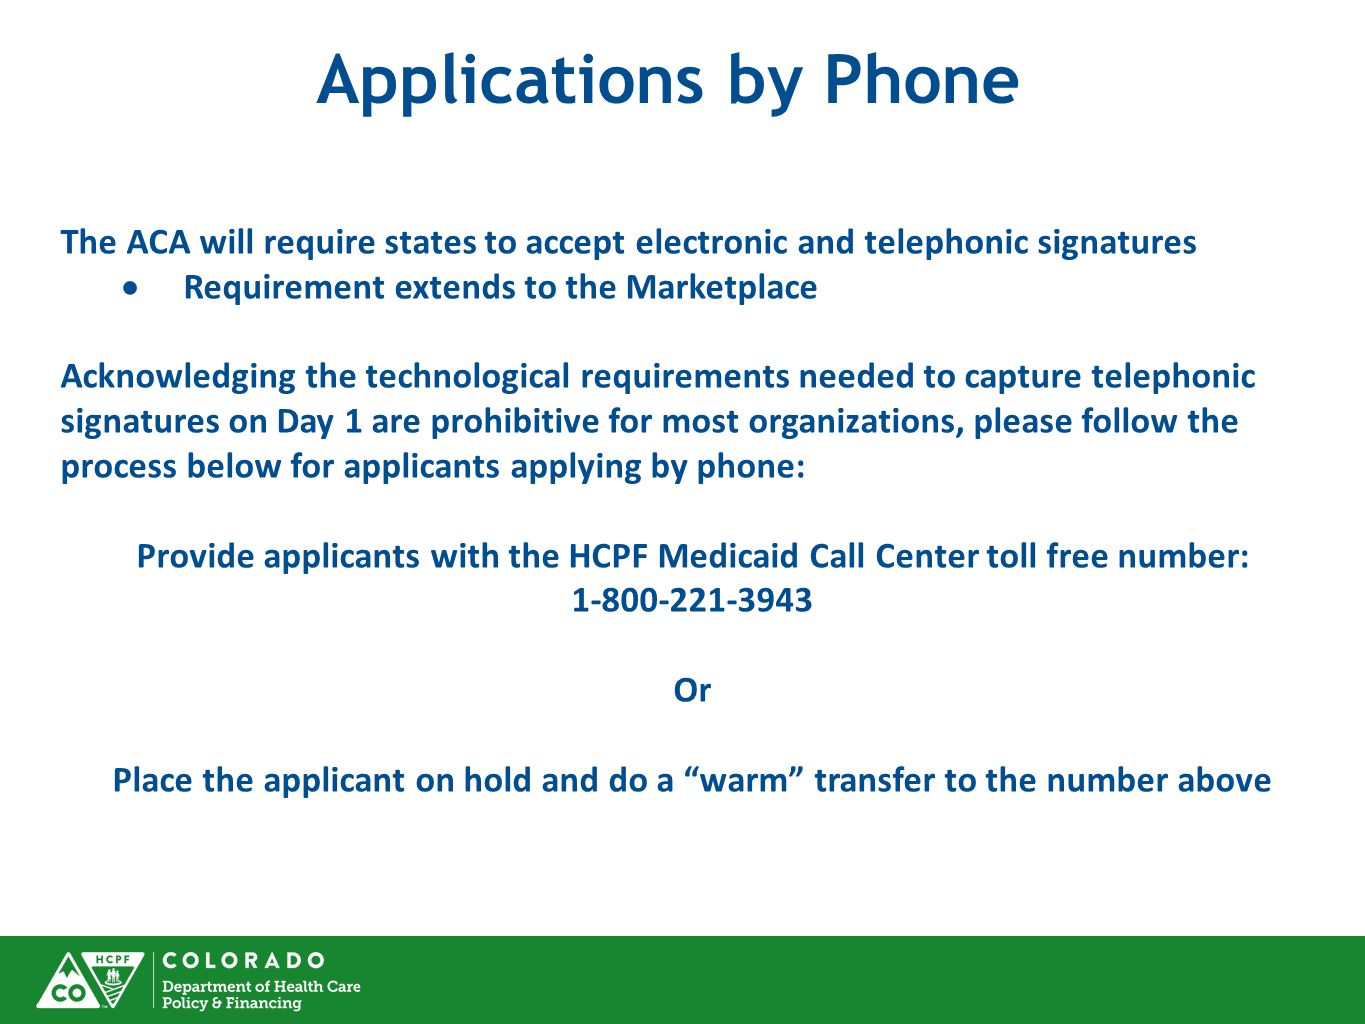 The ACA will require states to accept electronic and telephonic signatures  Requirement extends to the Marketplace Acknowledging the technological requirements needed to capture telephonic signatures on Day 1 are prohibitive for most organizations, please follow the process below for applicants applying by phone: Provide applicants with the HCPF Medicaid Call Center toll free number: 1-800-221-3943 Or Place the applicant on hold and do a warm transfer to the number above Applications by Phone